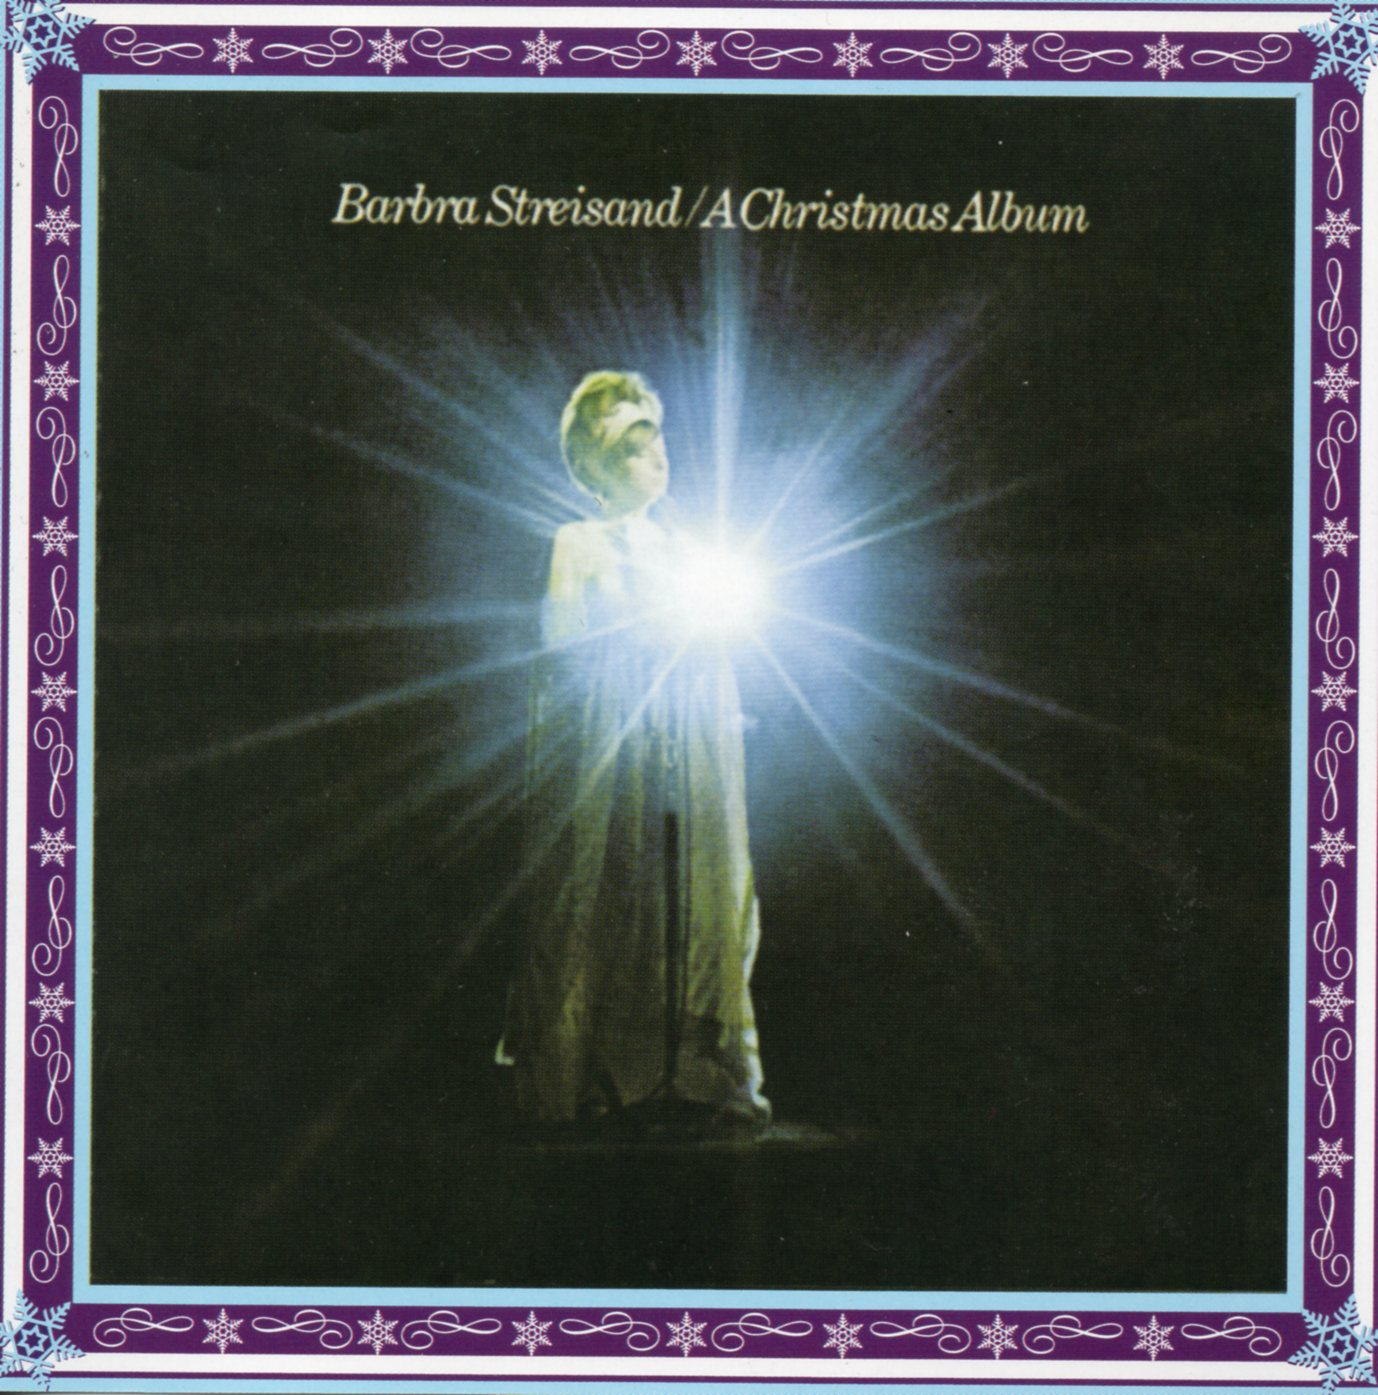 BARBRA STREISAND - A Christmas Album - CD